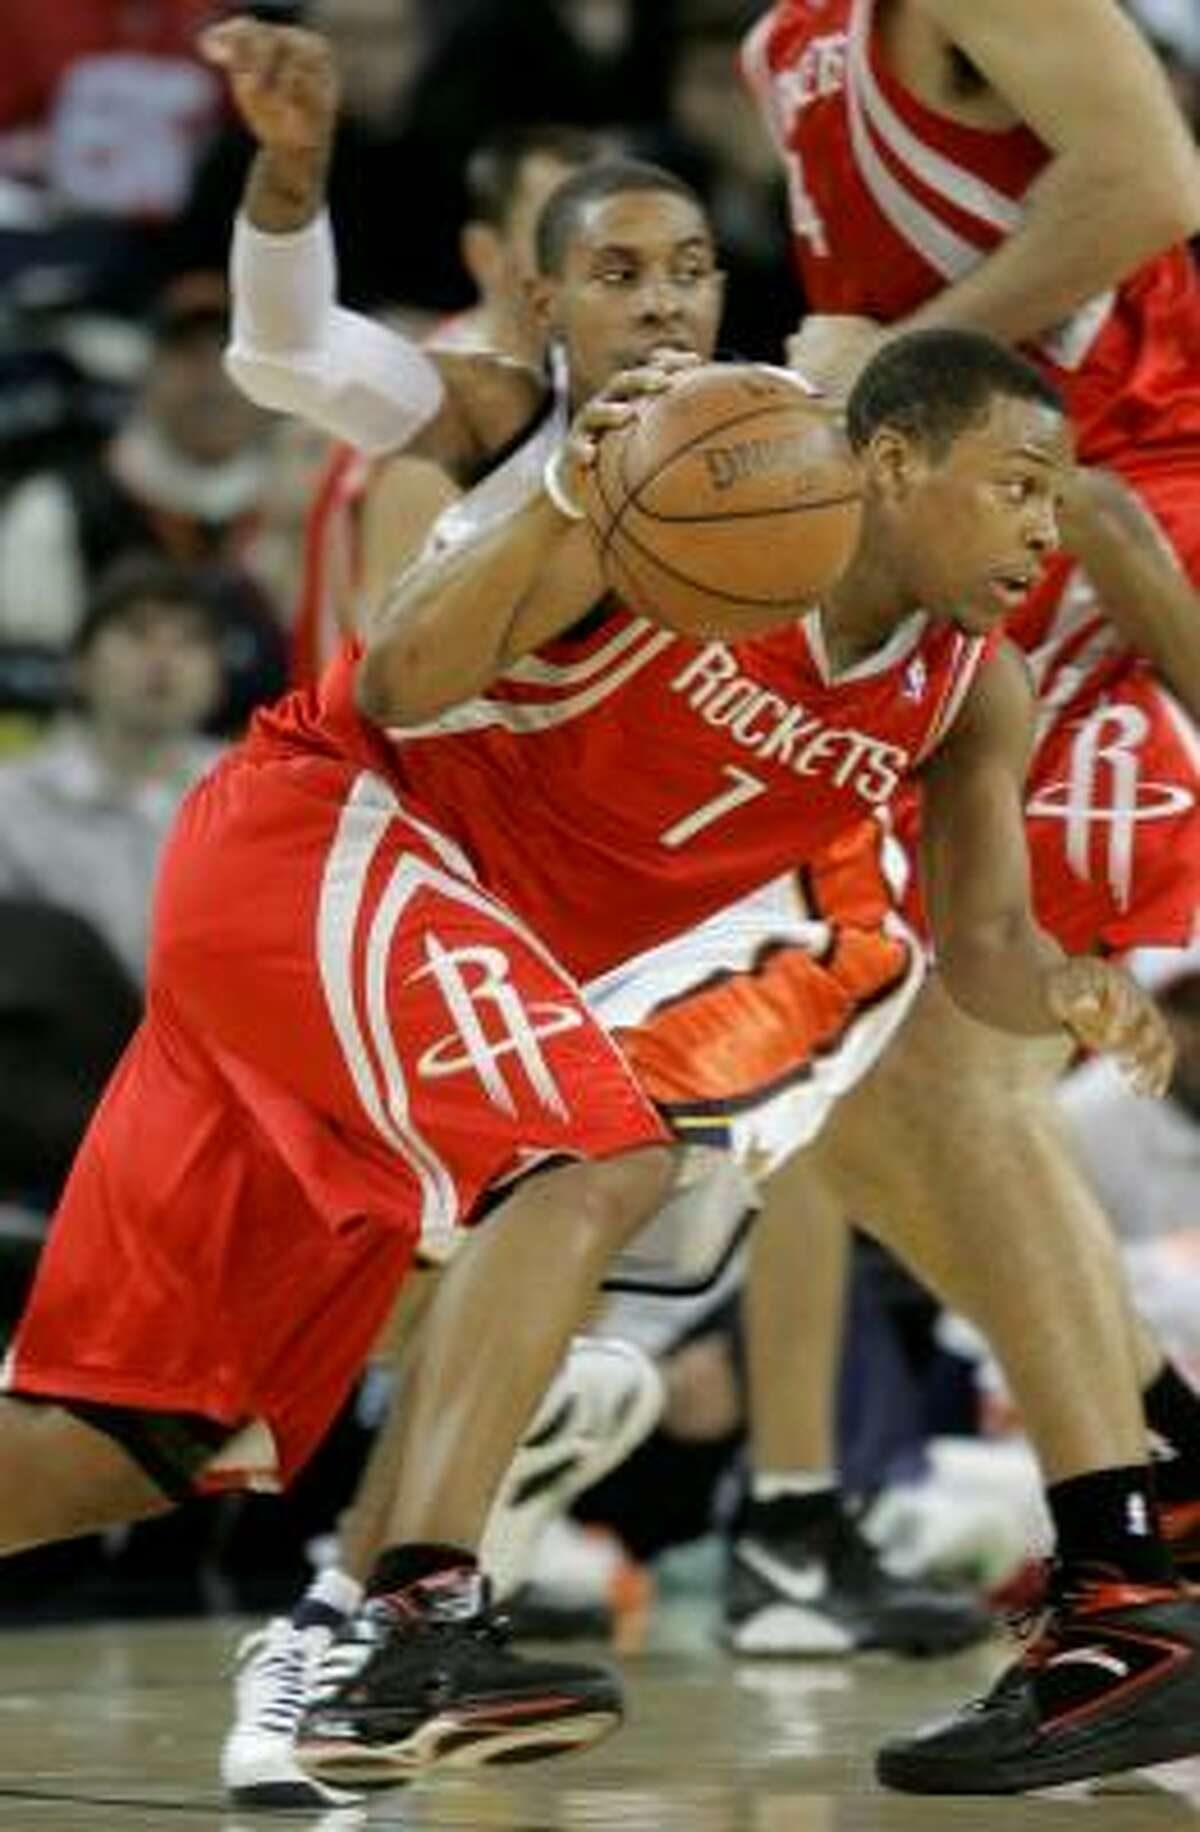 Rockets point guard Kyle Lowry (7) drives past Golden State Warriors guard C.J. Watson (23) in the second quarter.